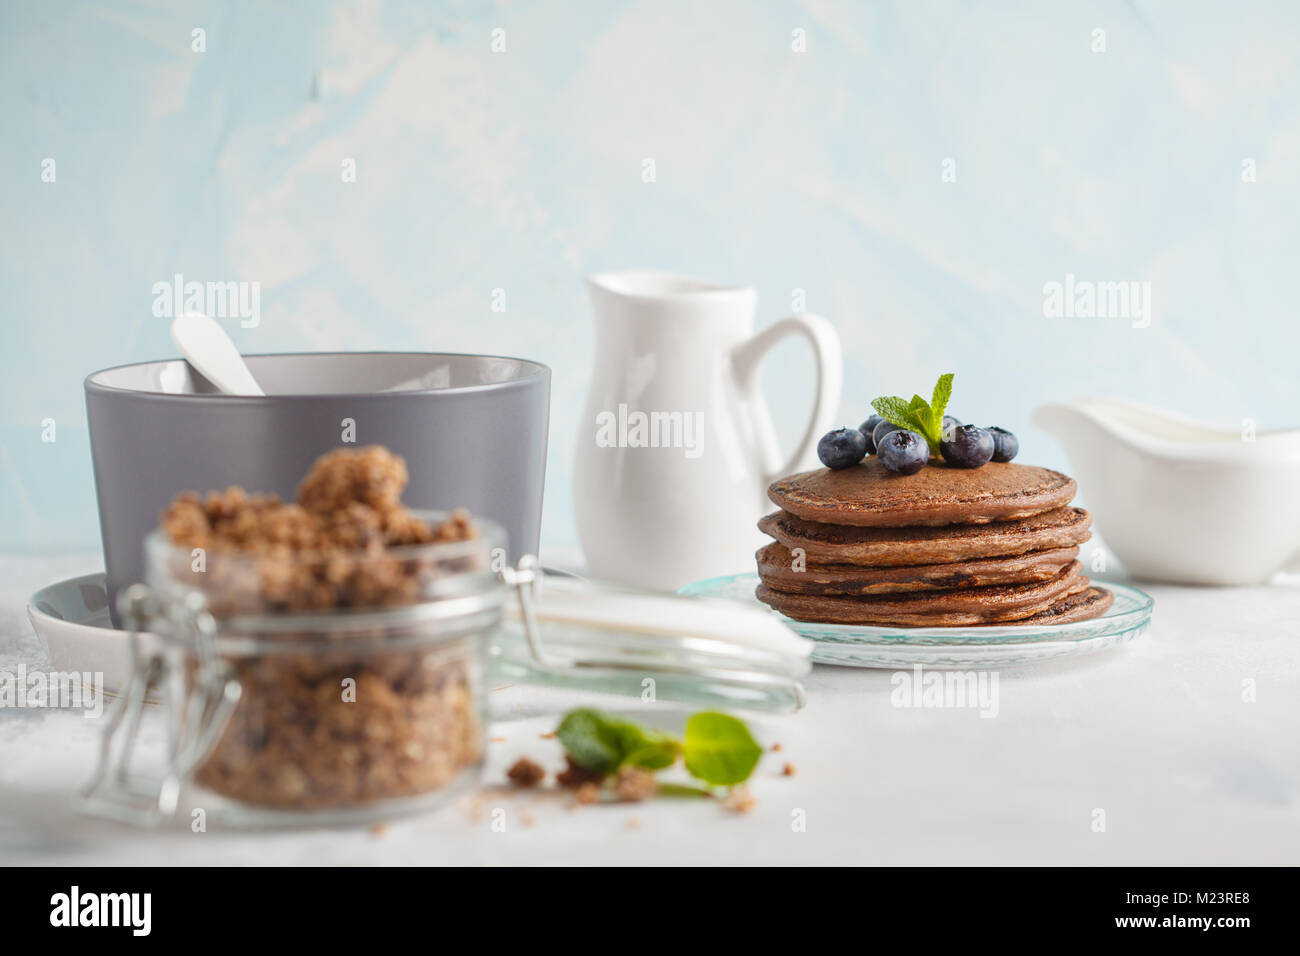 Chocolate pancakes, chocolate baked granola in a jar and milk. Healthy breakfast concept. Stock Photo